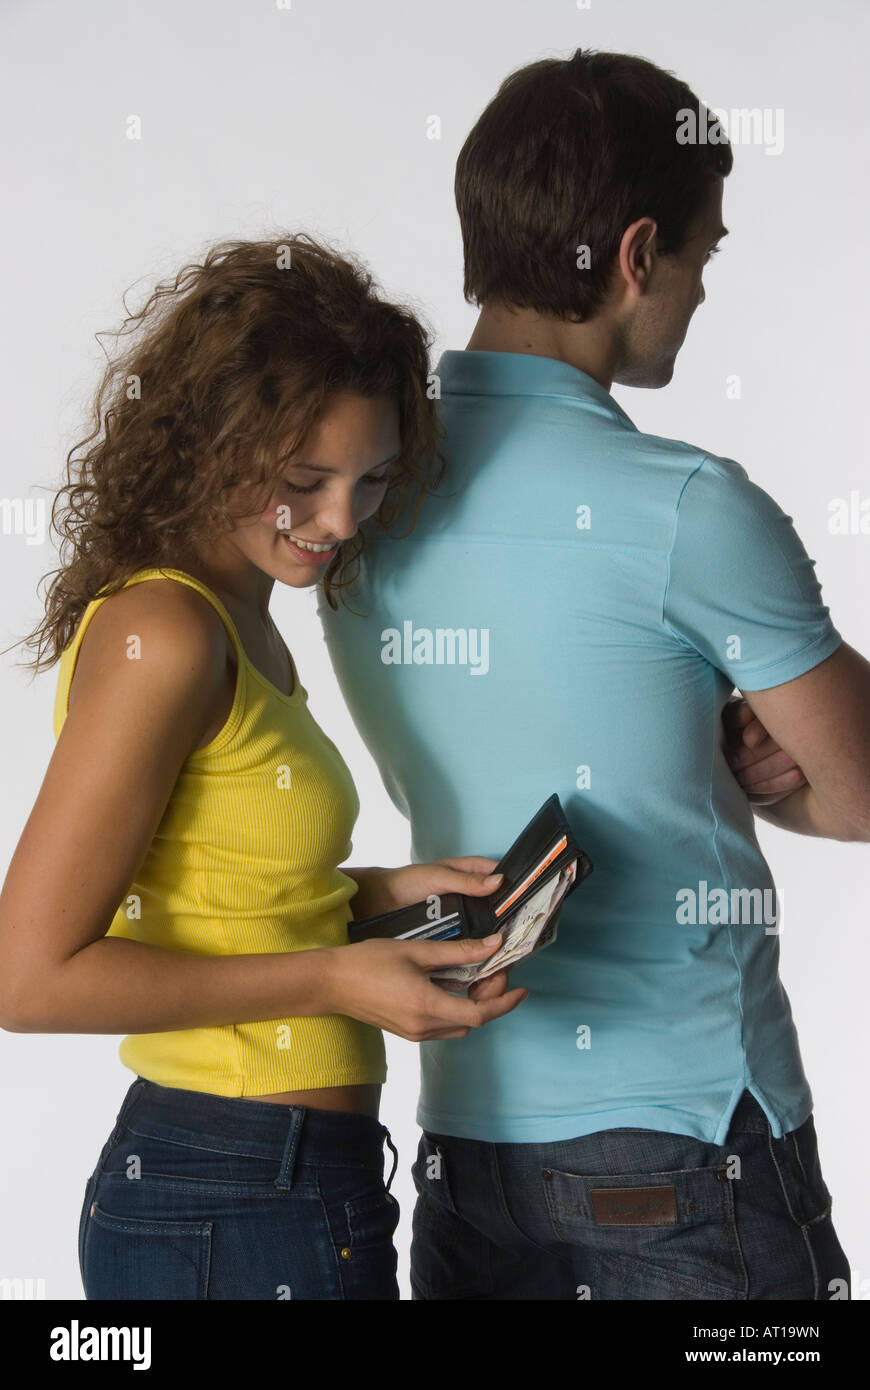 Couple Andrew Jess   Model released   Shoot No 3595 - Stock Image